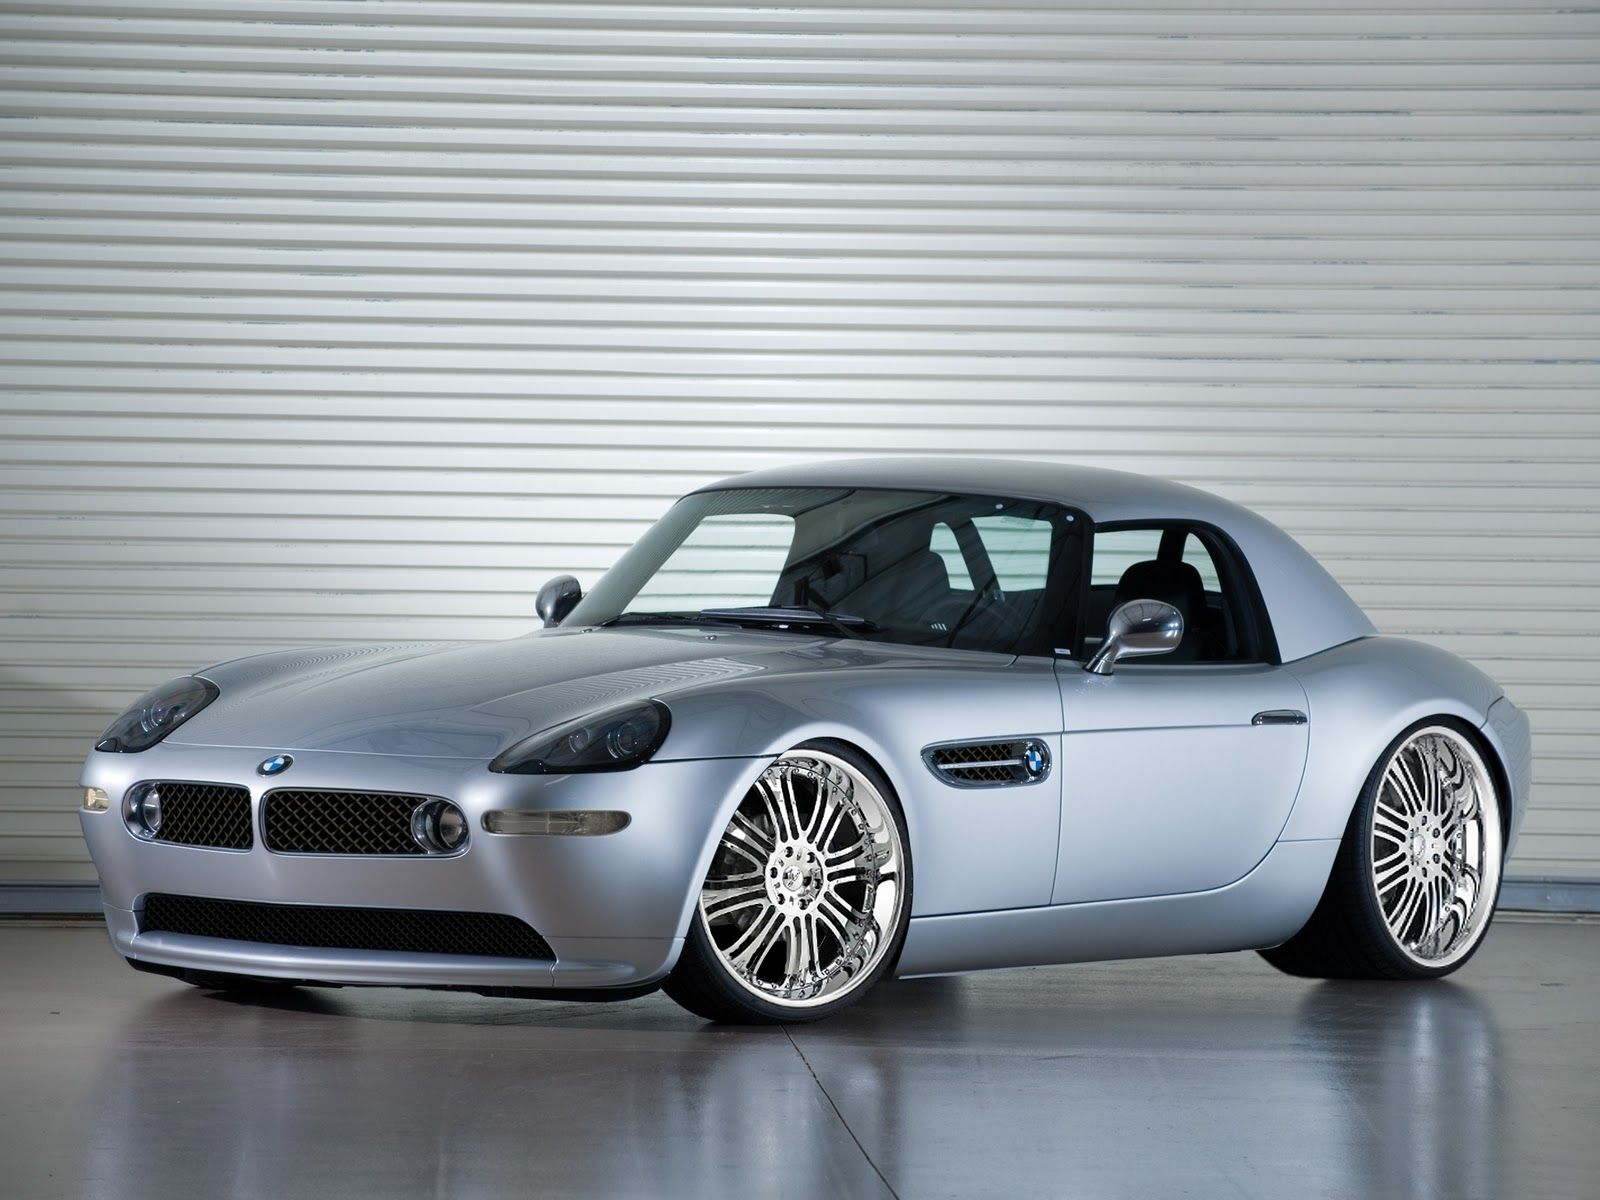 The Bmw Z8 Was A Convertible Sports Car Automobile